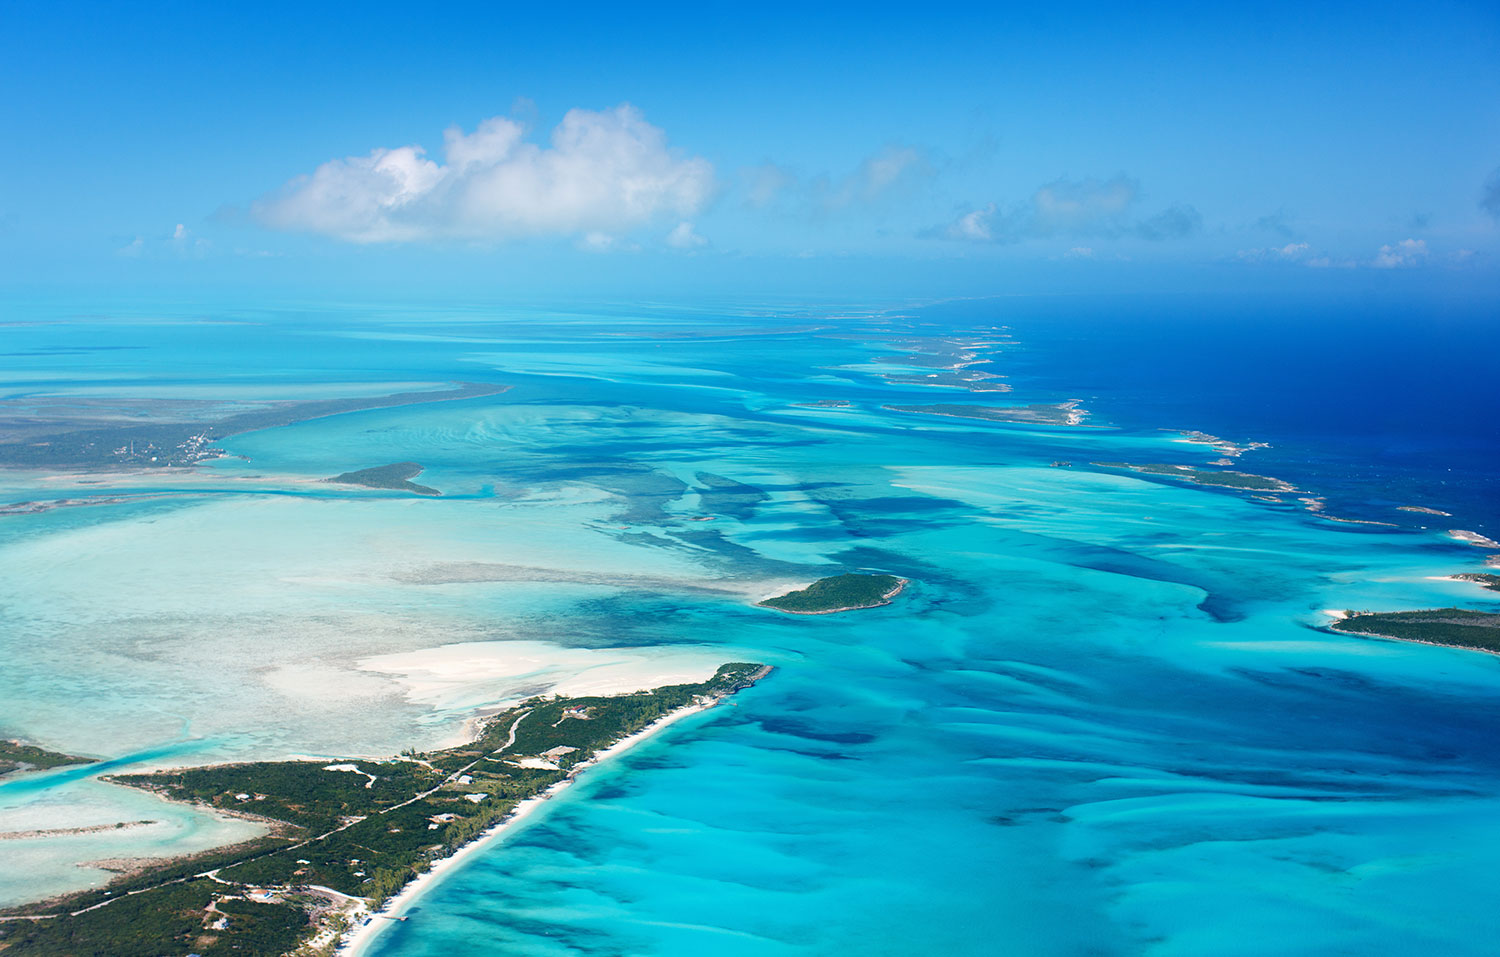 Aerial of Bahamas Islands